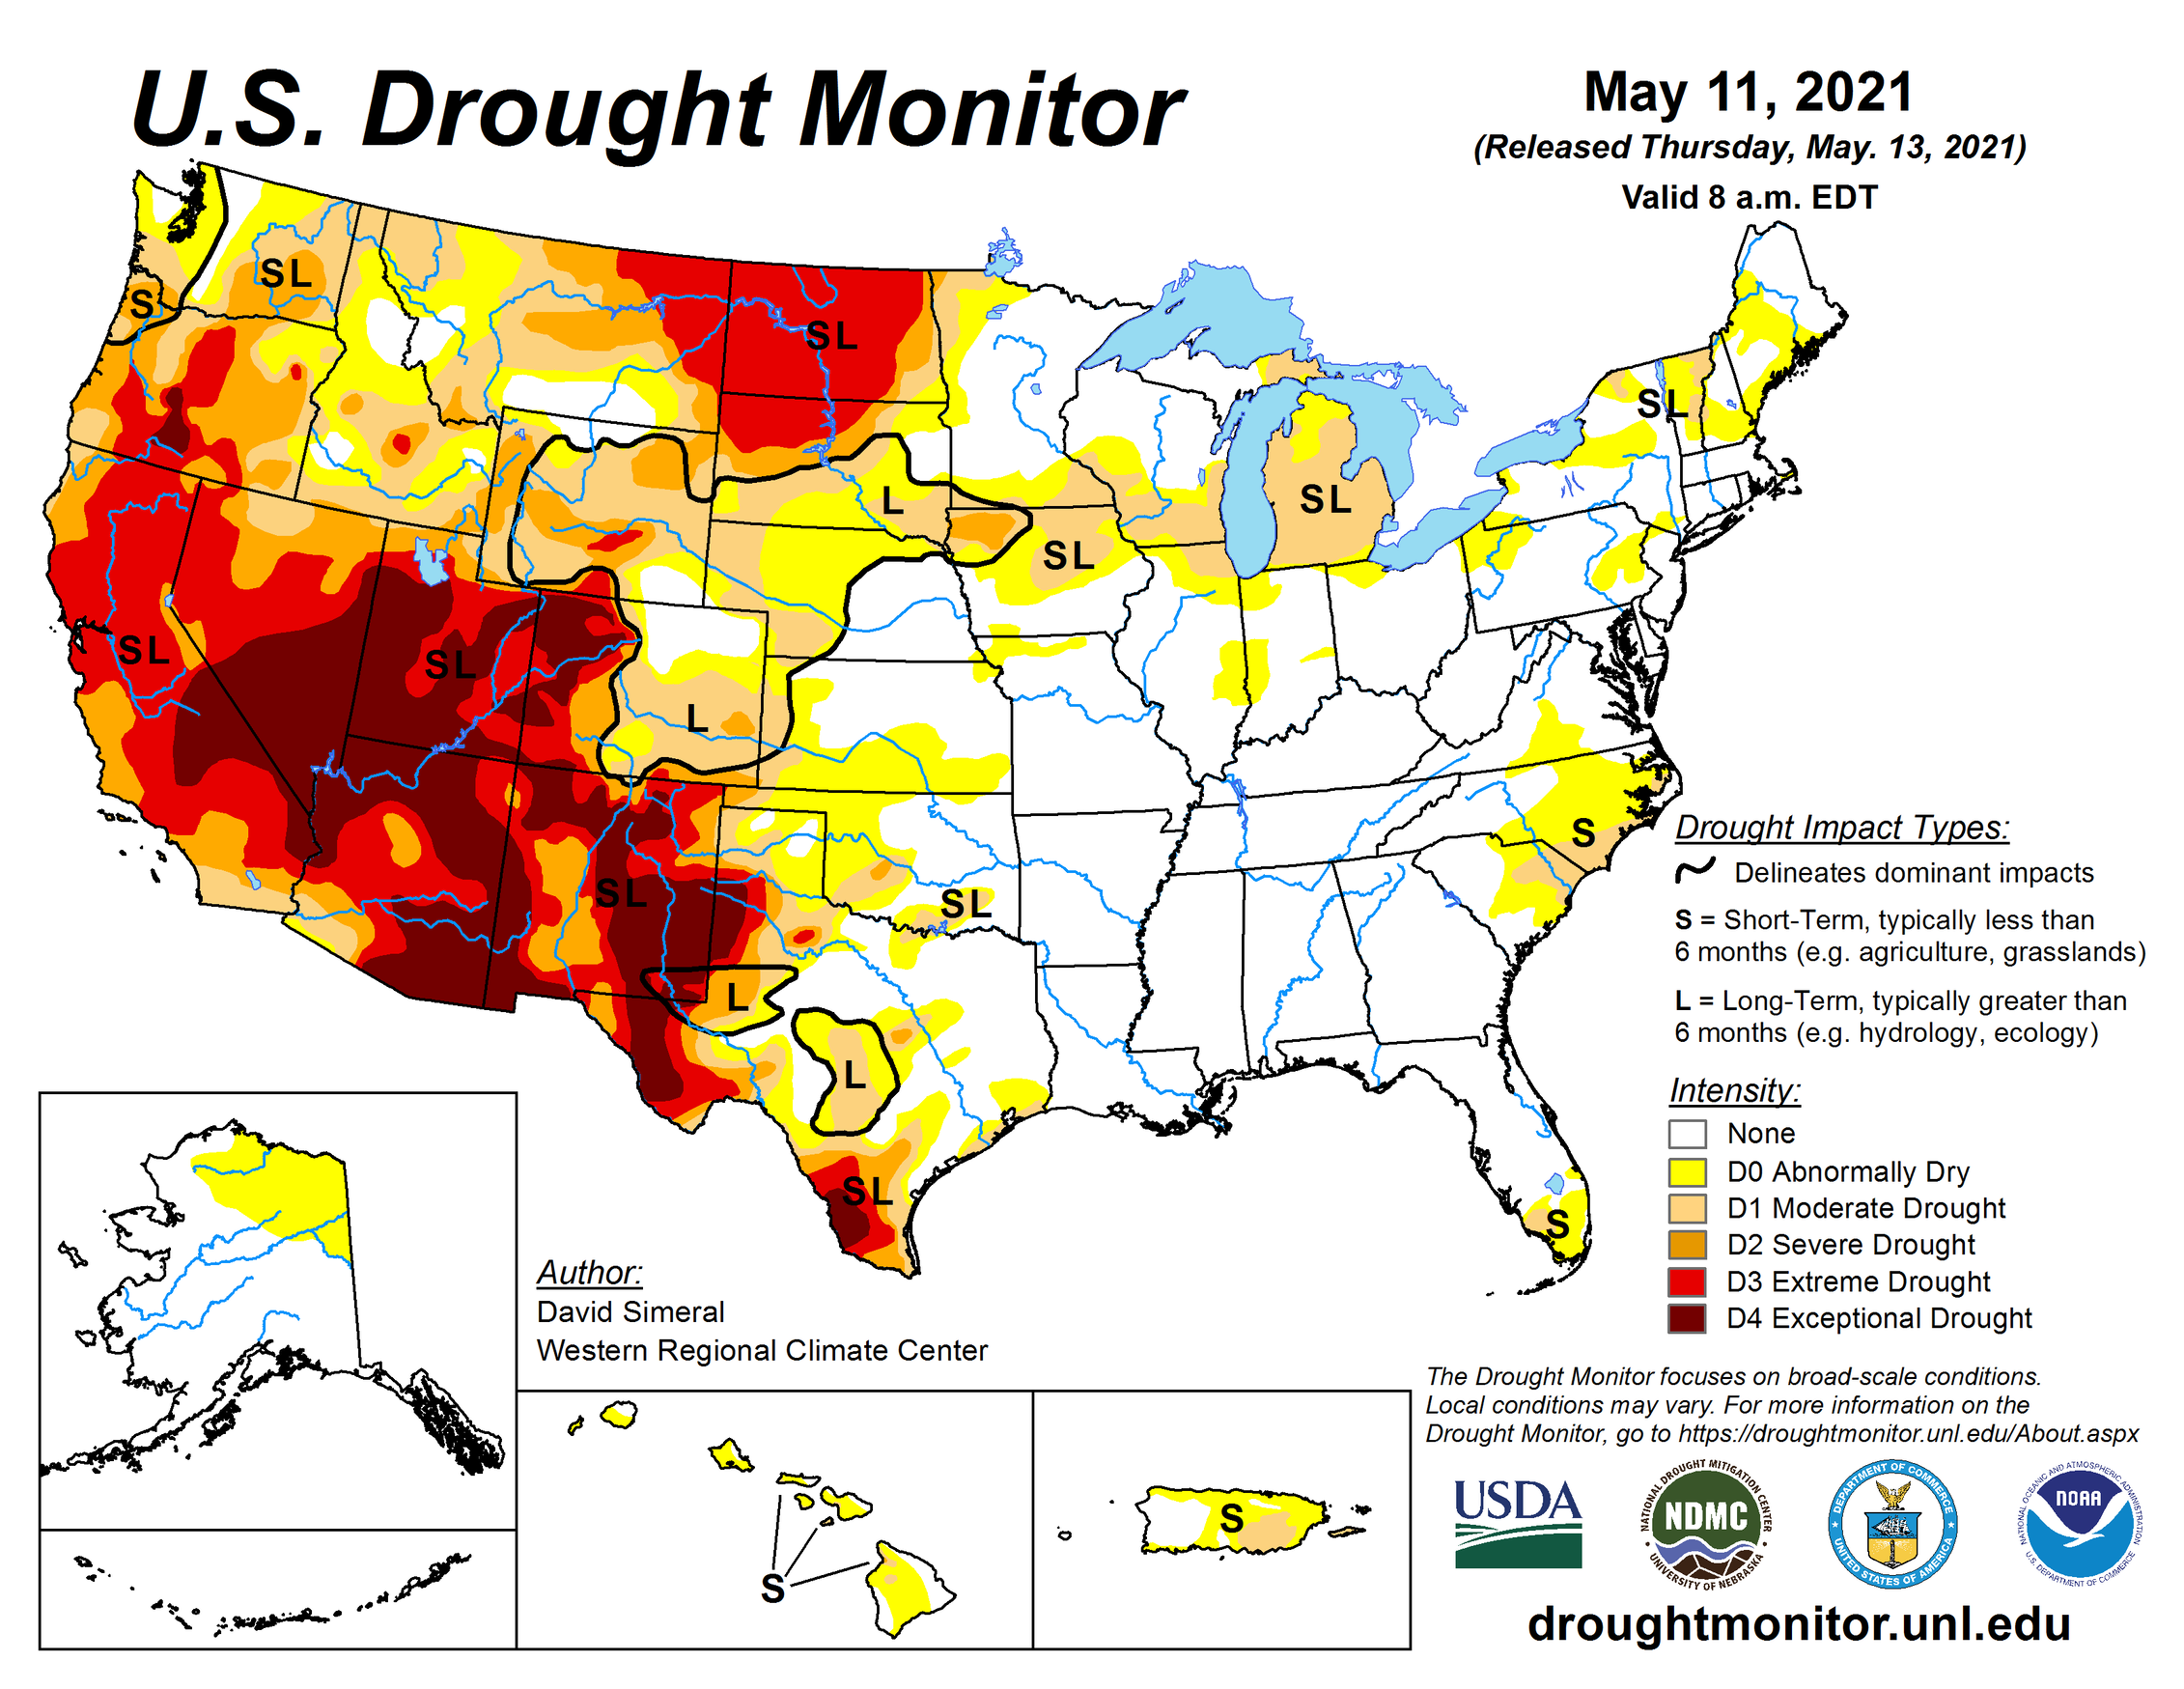 A dangerous fire season looms as the drought-stricken Western US heads for a water crisis